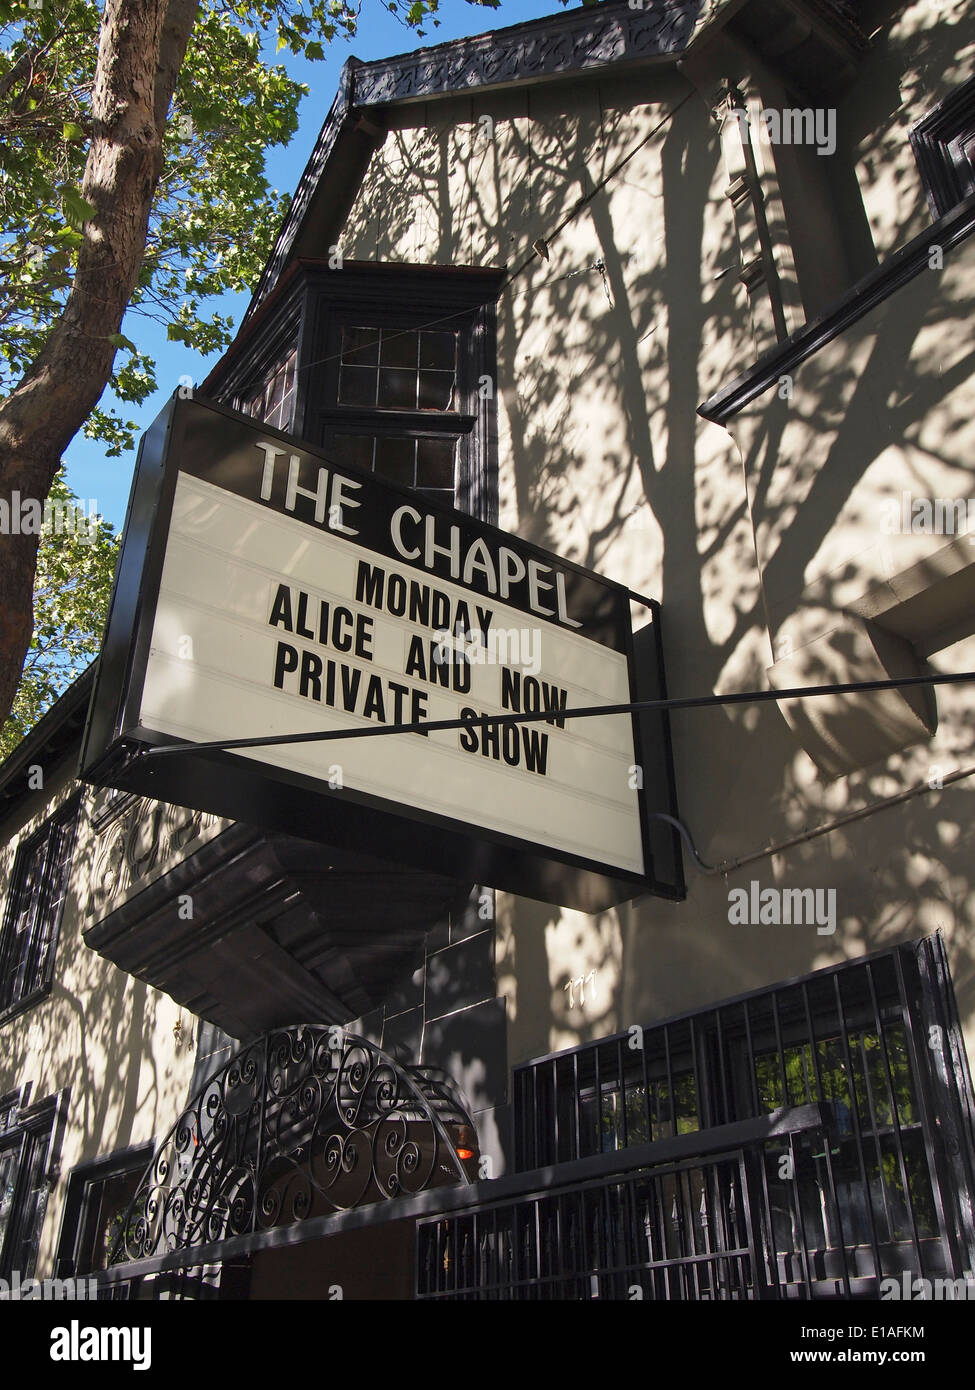 The Chapel live music venue in the Mission District of San Francisco - Stock Image